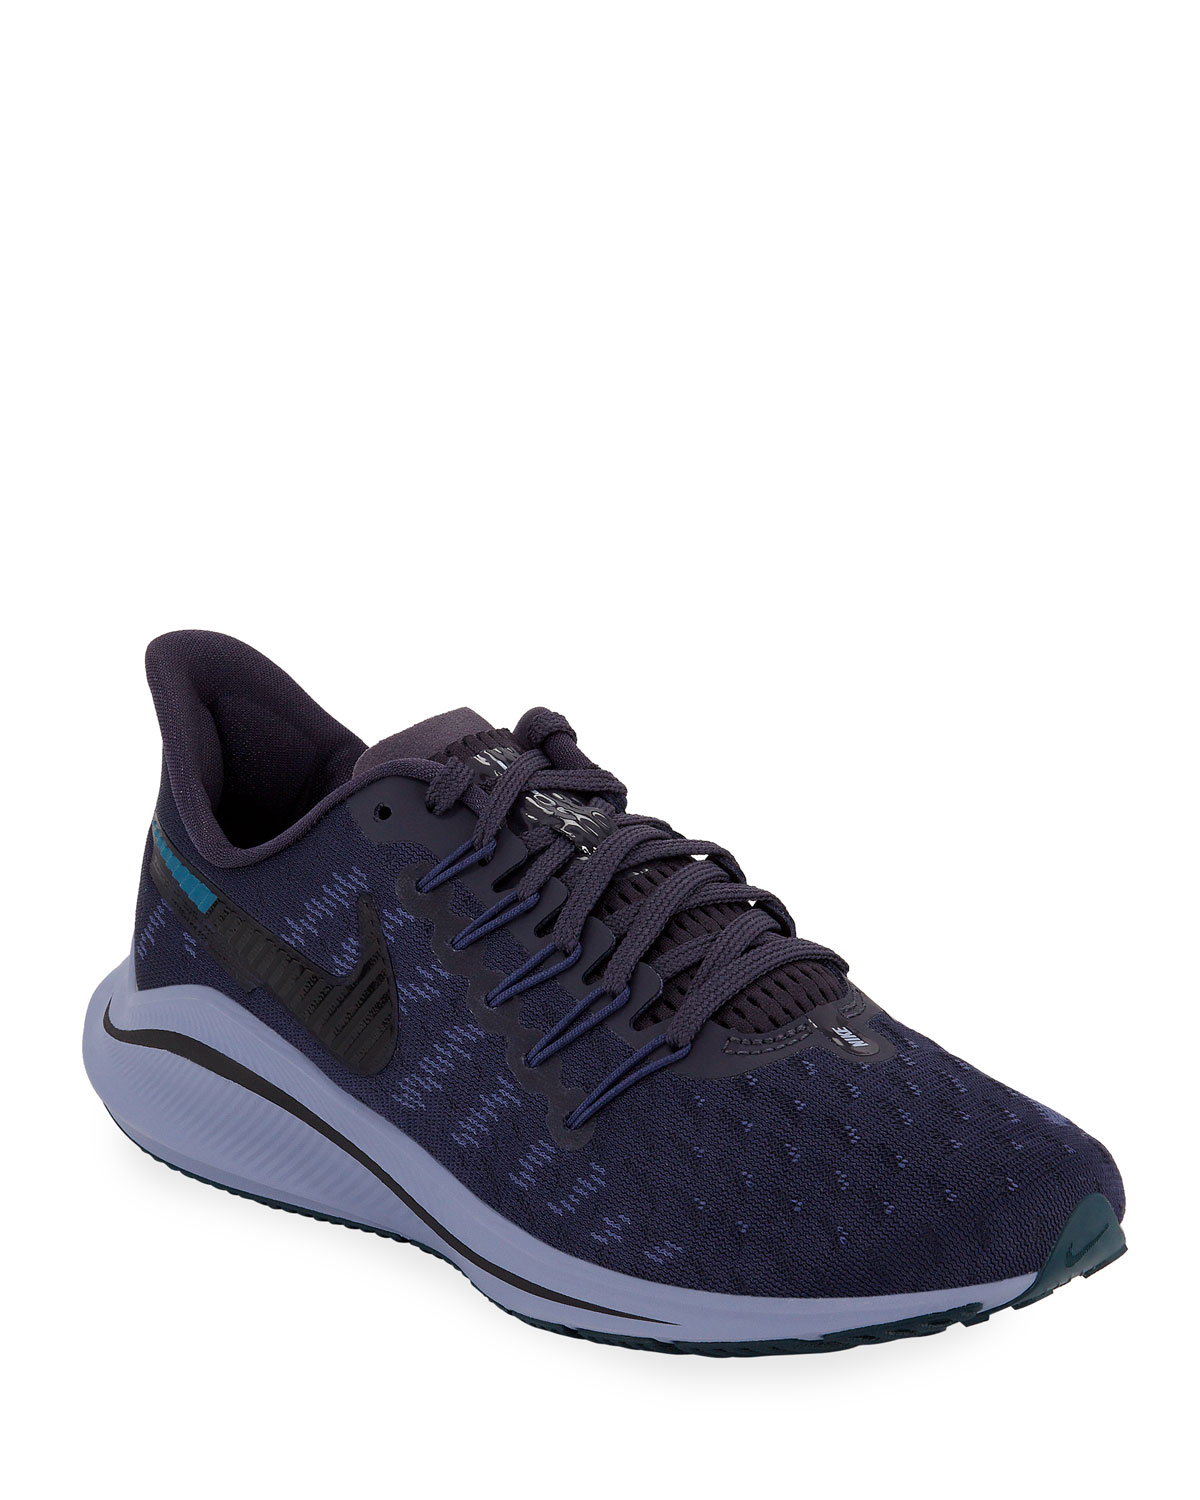 Air Zoom Vomero 15 Running Sneakers